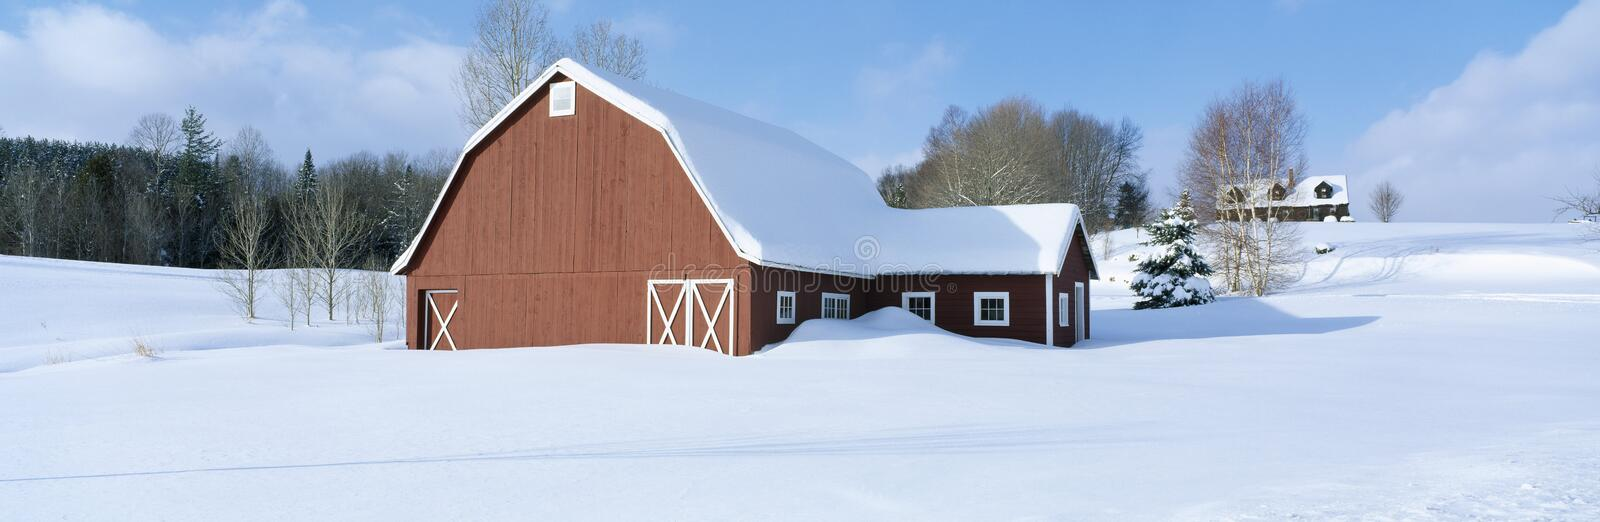 Winter in New England, Red Barn in Snow, South of Danville, Vermont royalty free stock photos